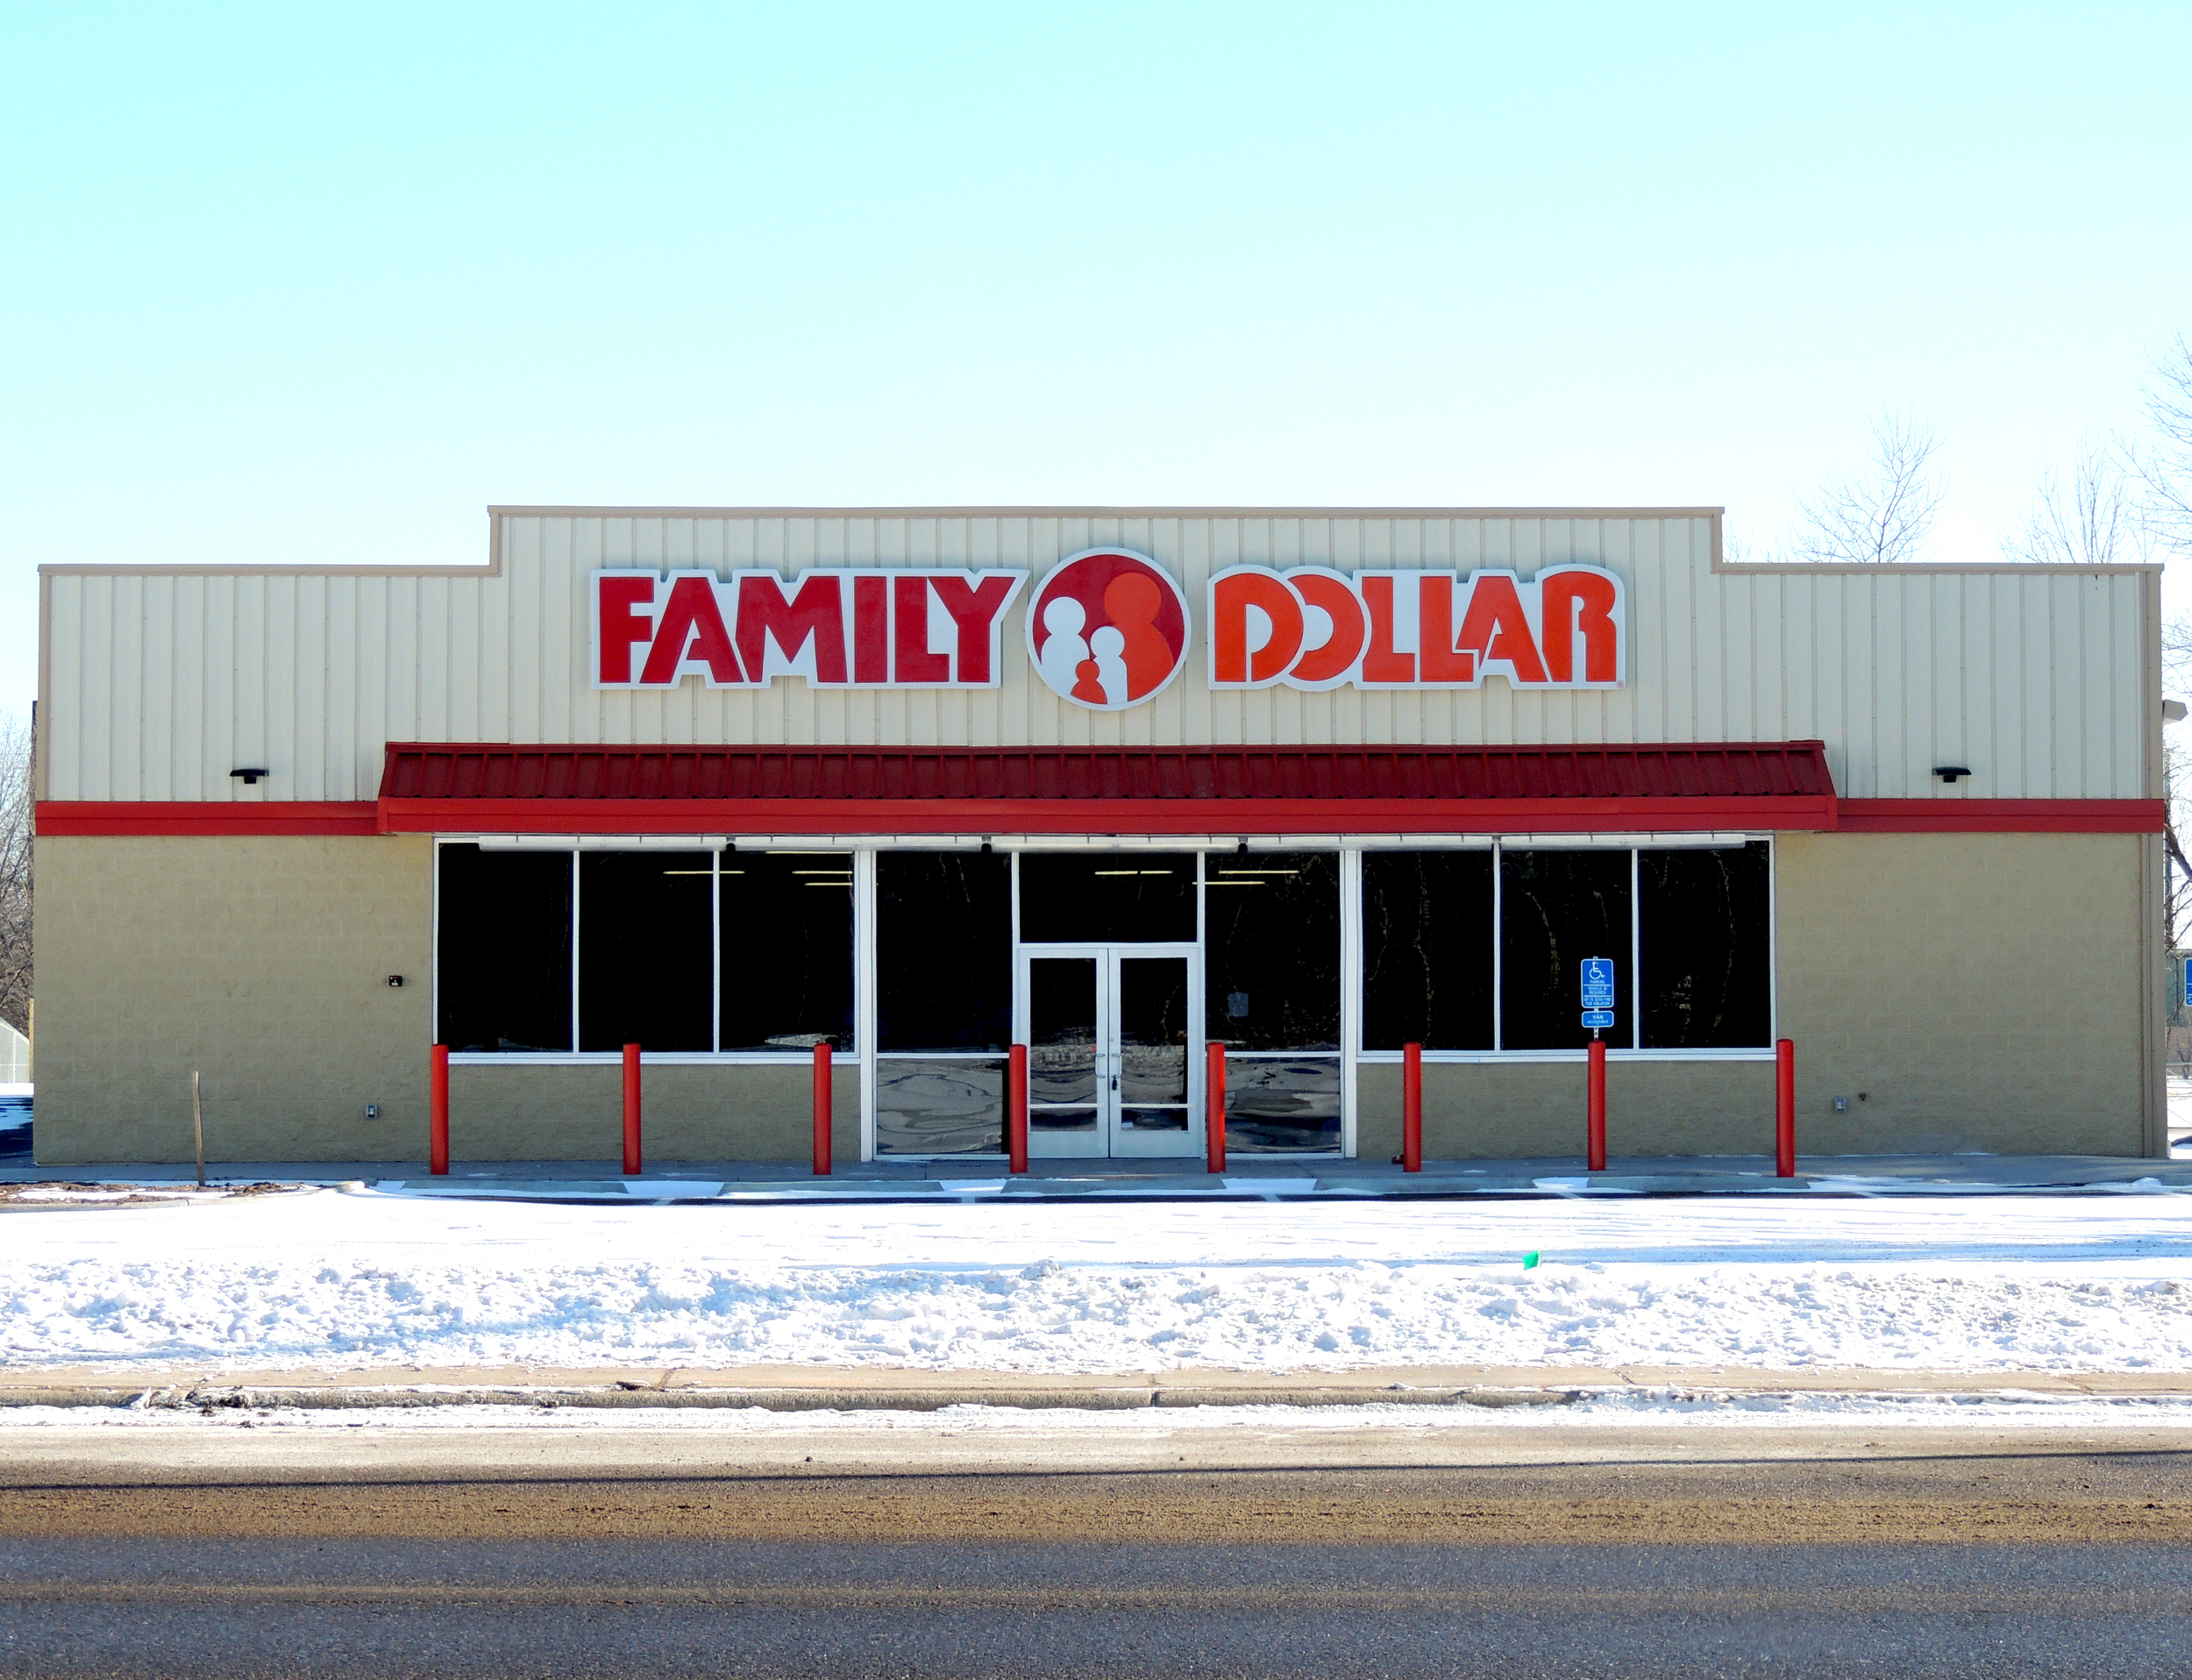 The new Family Dollar store at 602 Commonwealth Avenue in Duluth